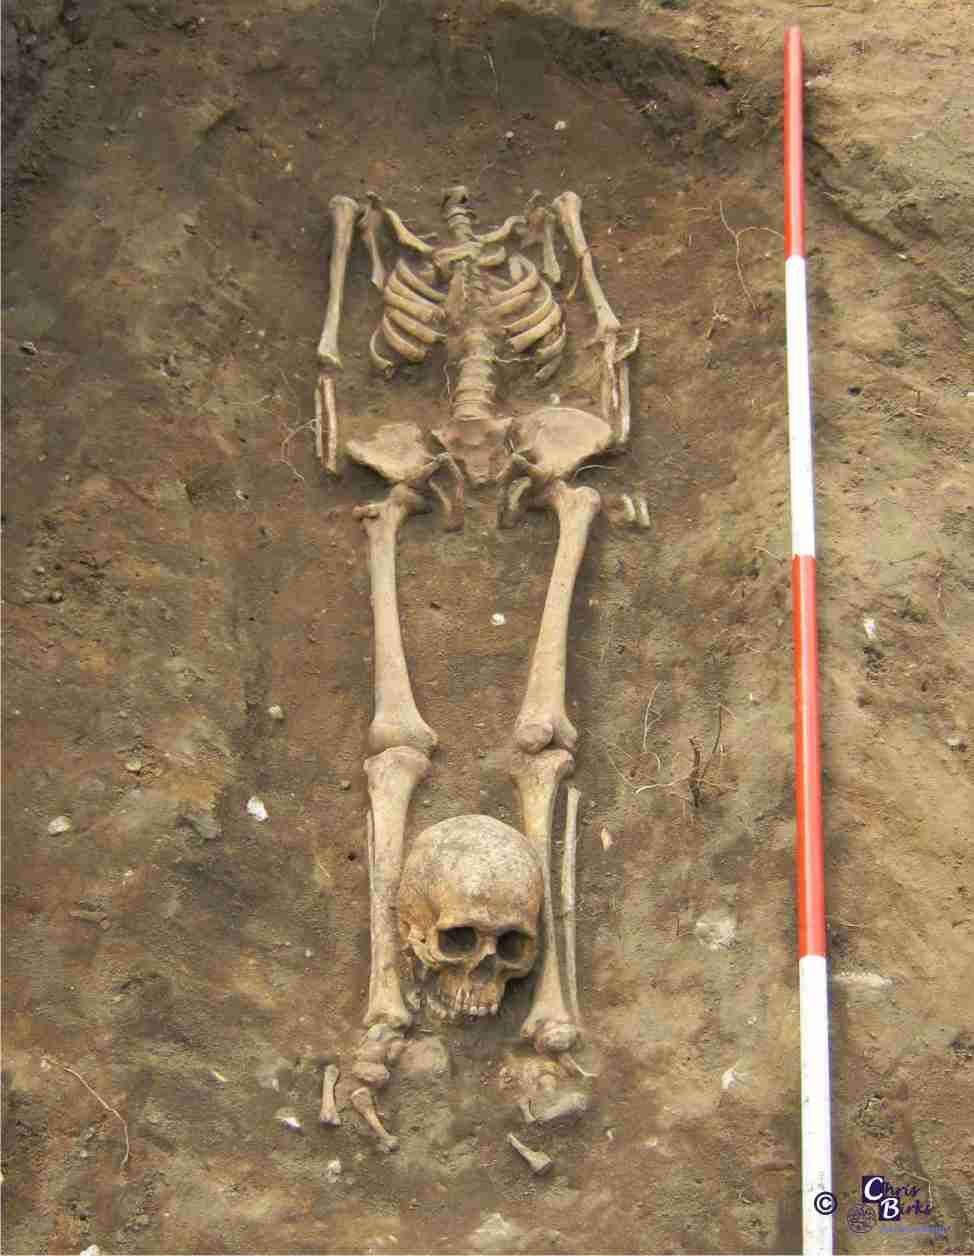 Decapitated deviant burial. Photo courtesy of Archeaology.co.uk